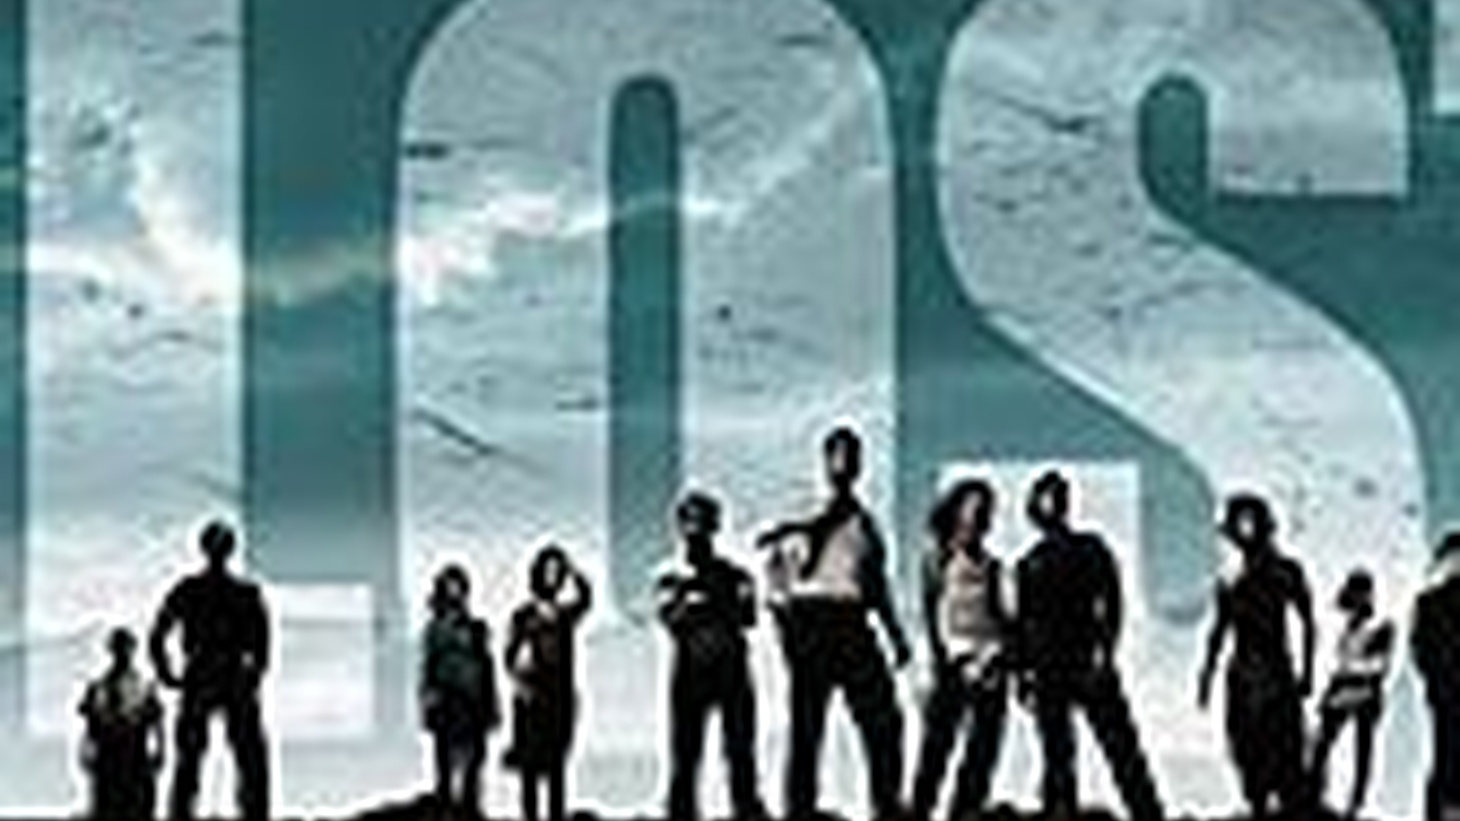 Did you see the season premiere of Lost last week? Great episode! It's a great series, and I'm glad to have it back. So why do I feel burdened by its return?